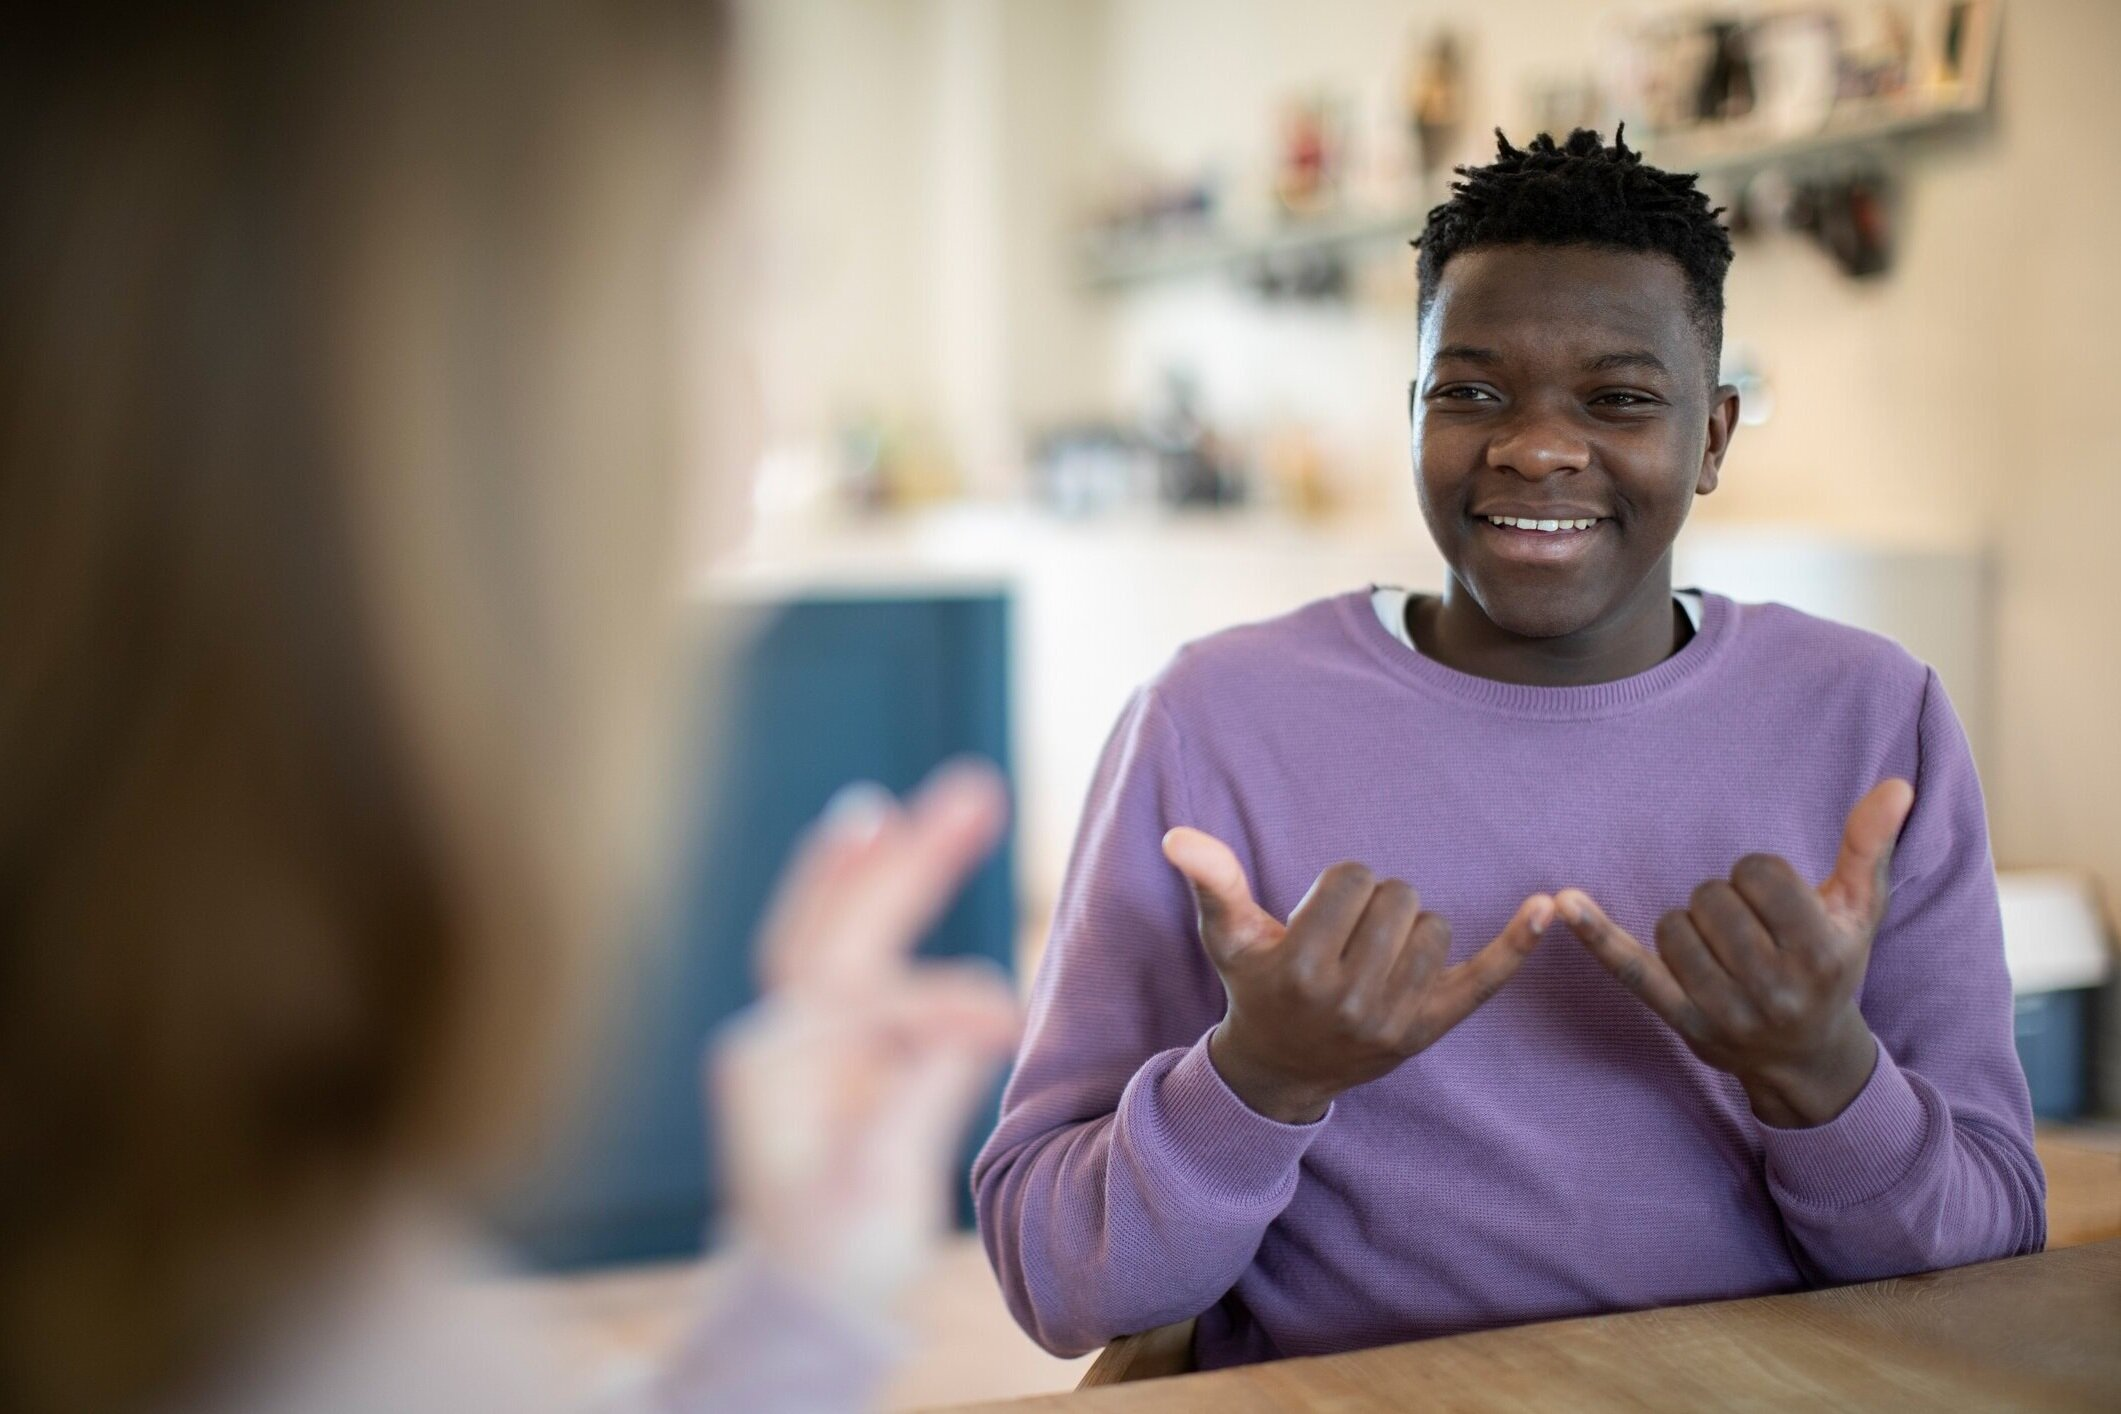 10 Tips To Have Effective Communication By Having Sign Language Interpreter